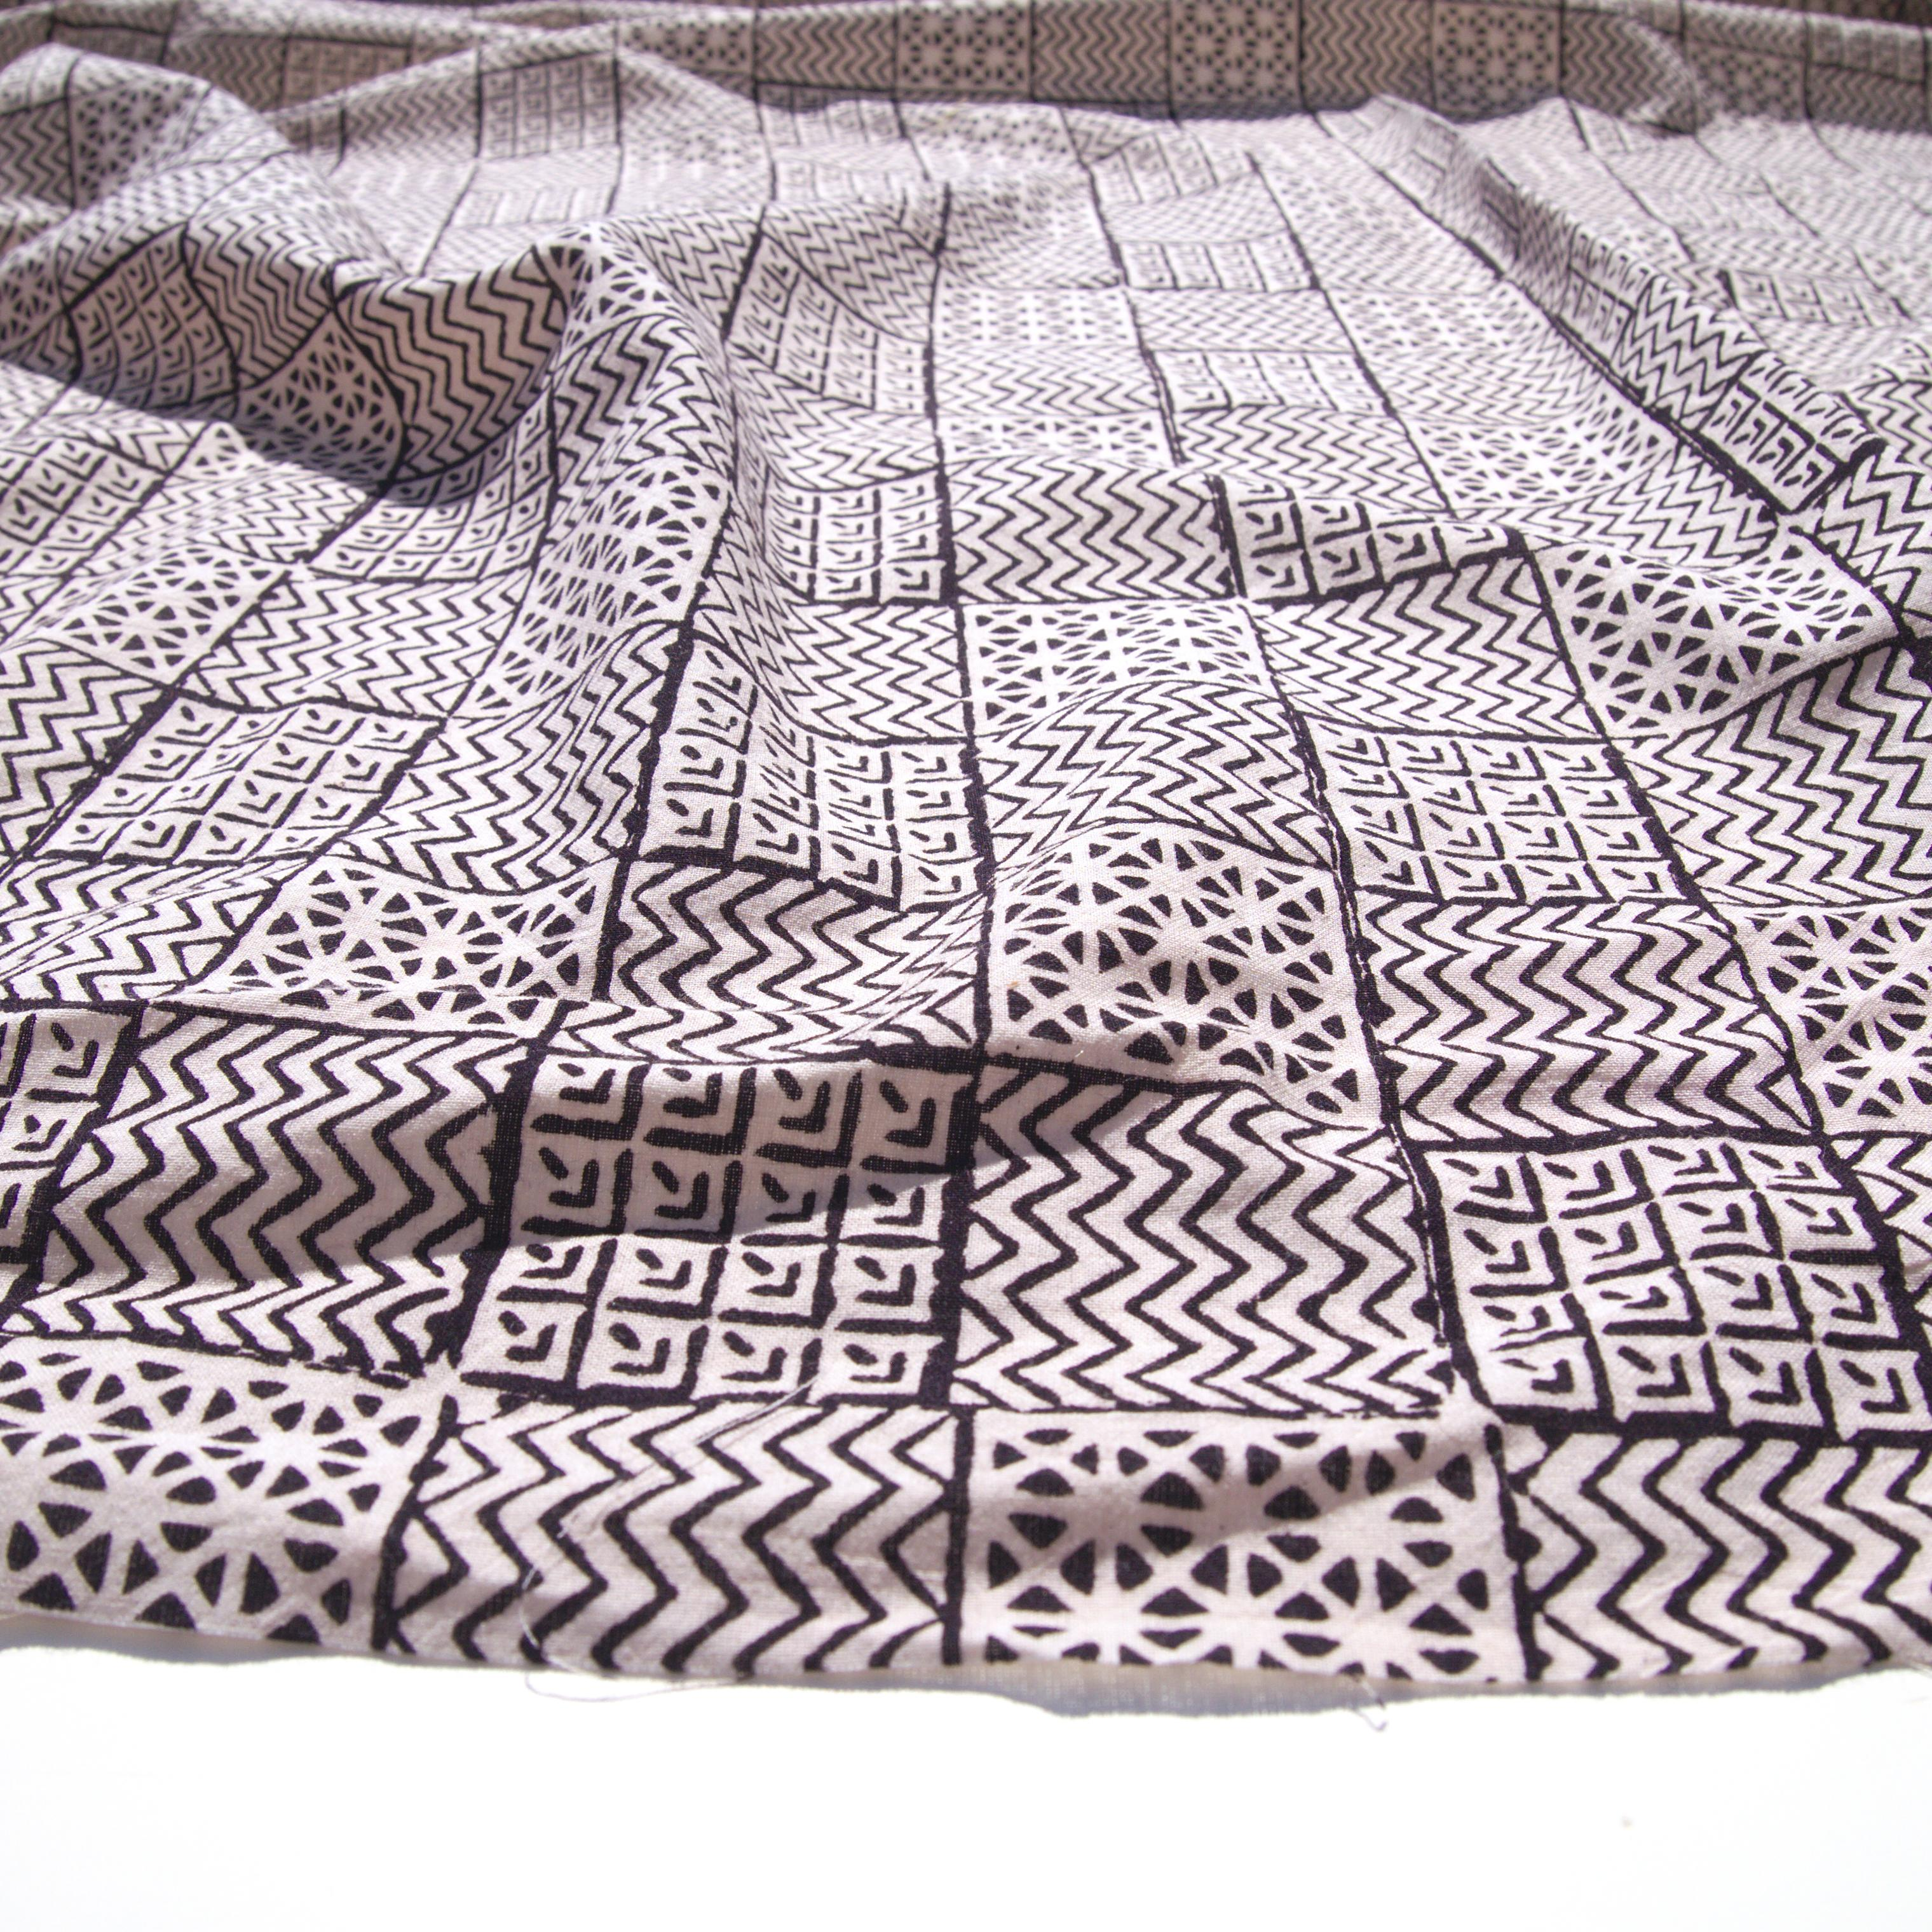 100% Block-Printed Cotton Fabric From India- Bagh - Iron Rust Black Combo Print - Angle